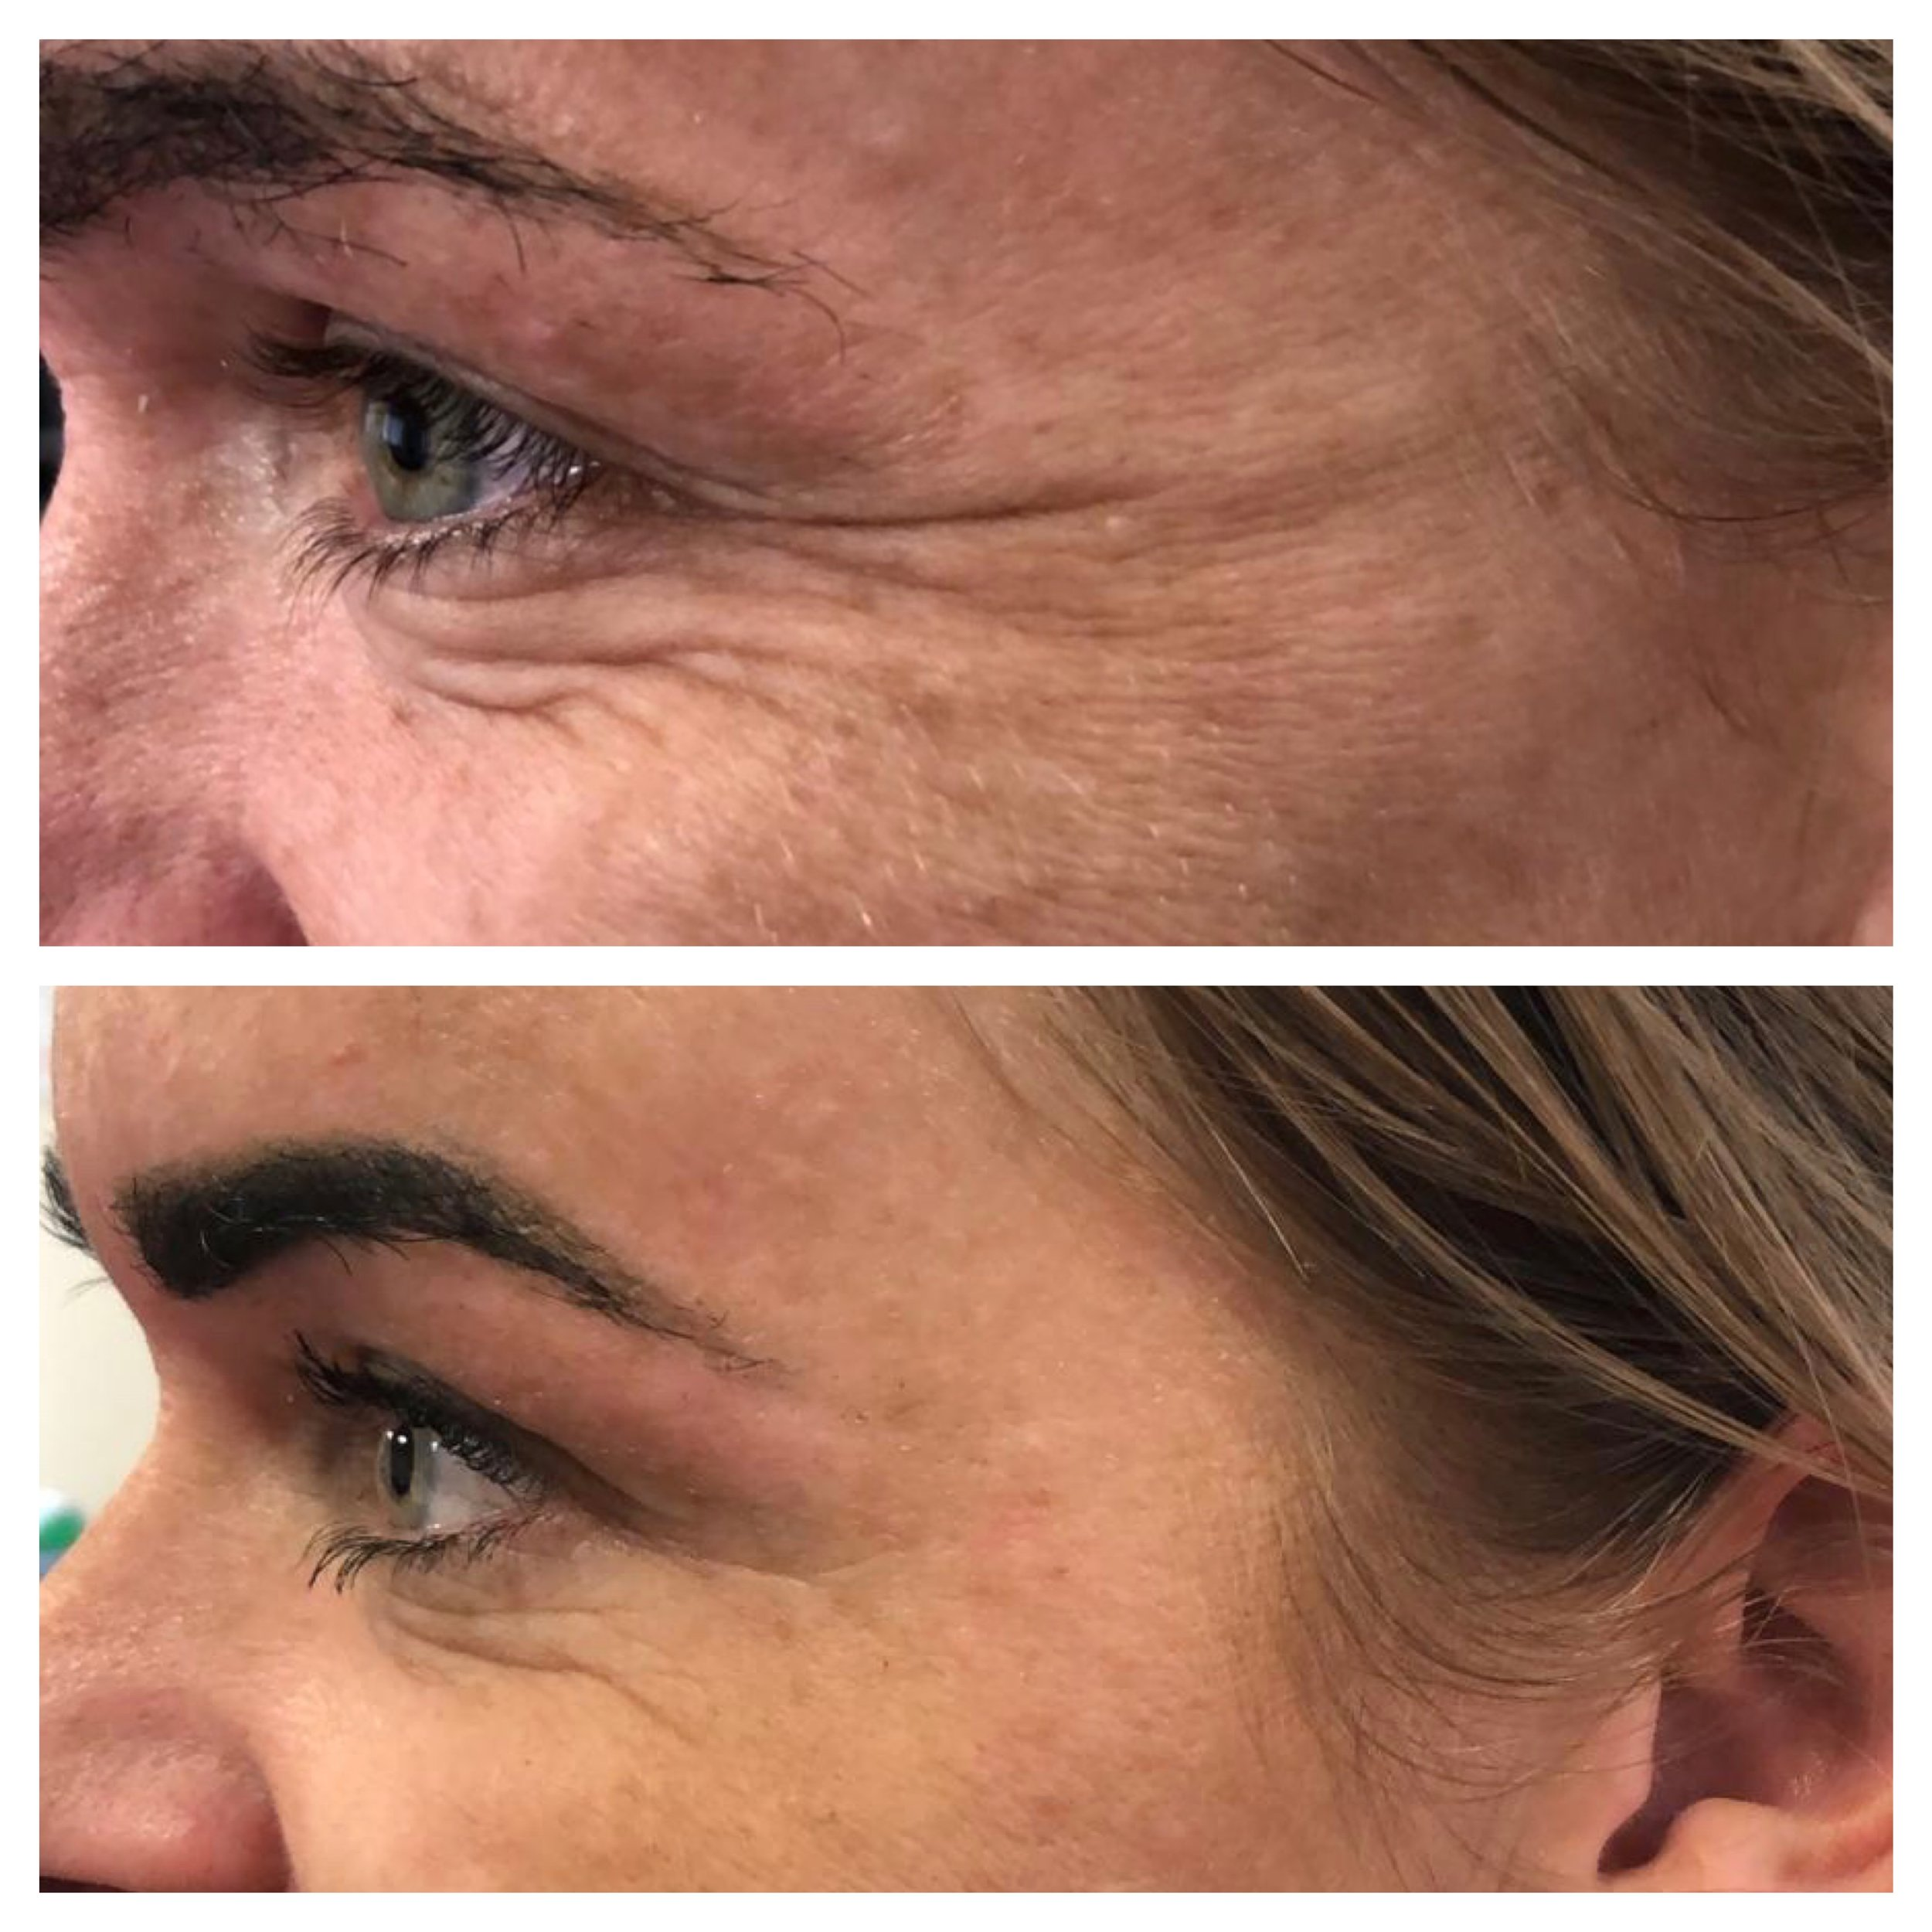 Before & After Botox Treatment for the Crows Feet (lines around the eyes)